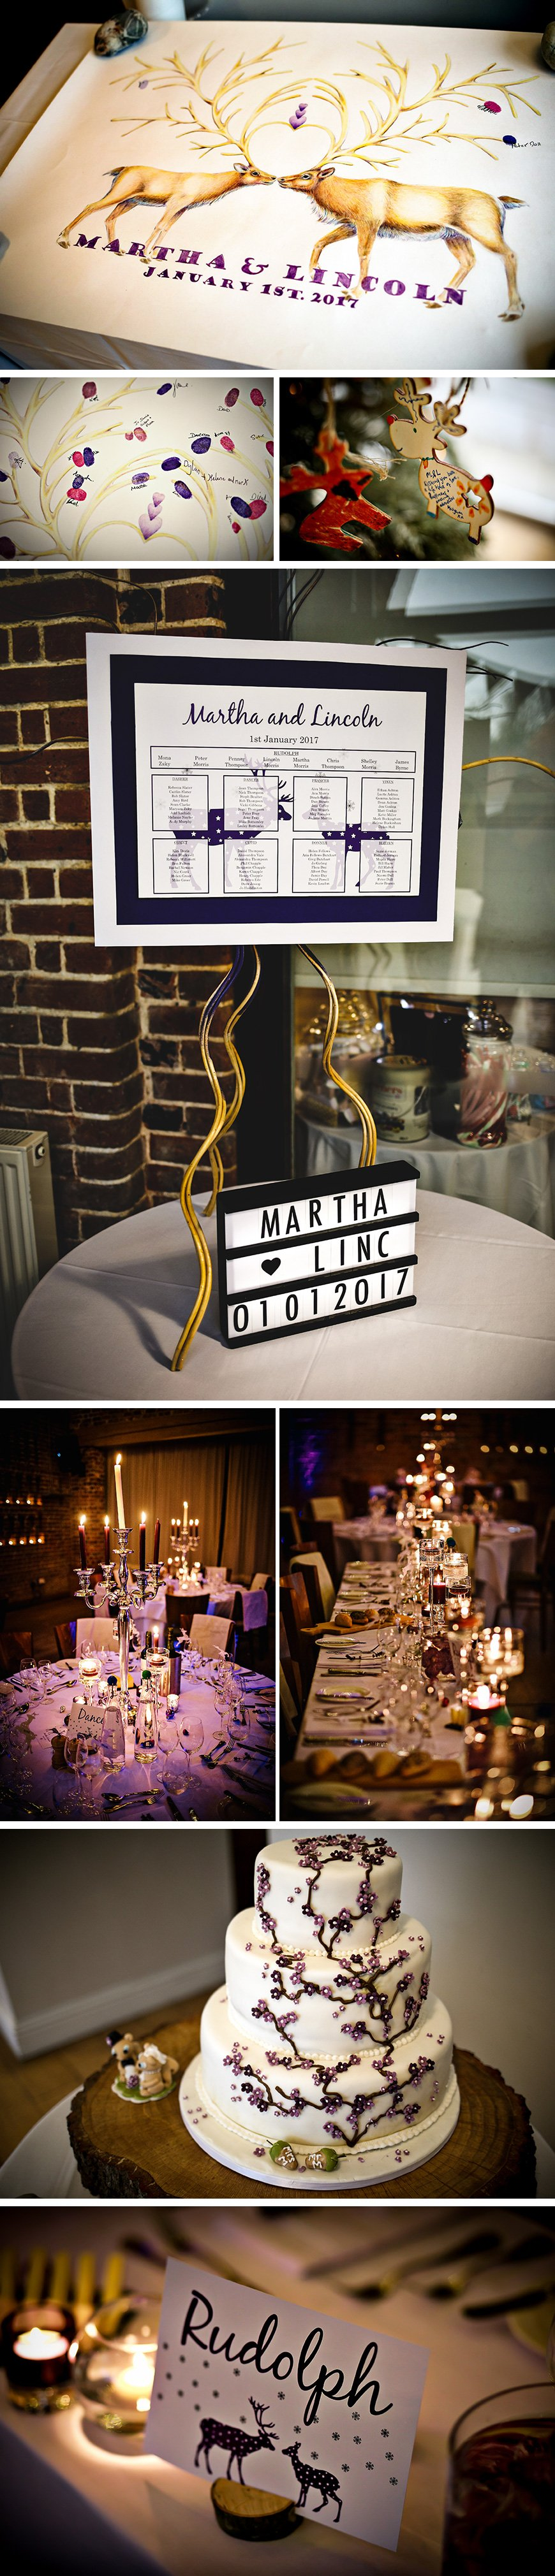 Mattie And Lincoln's Magical Winter Wedding At Wasing Park   CHWV